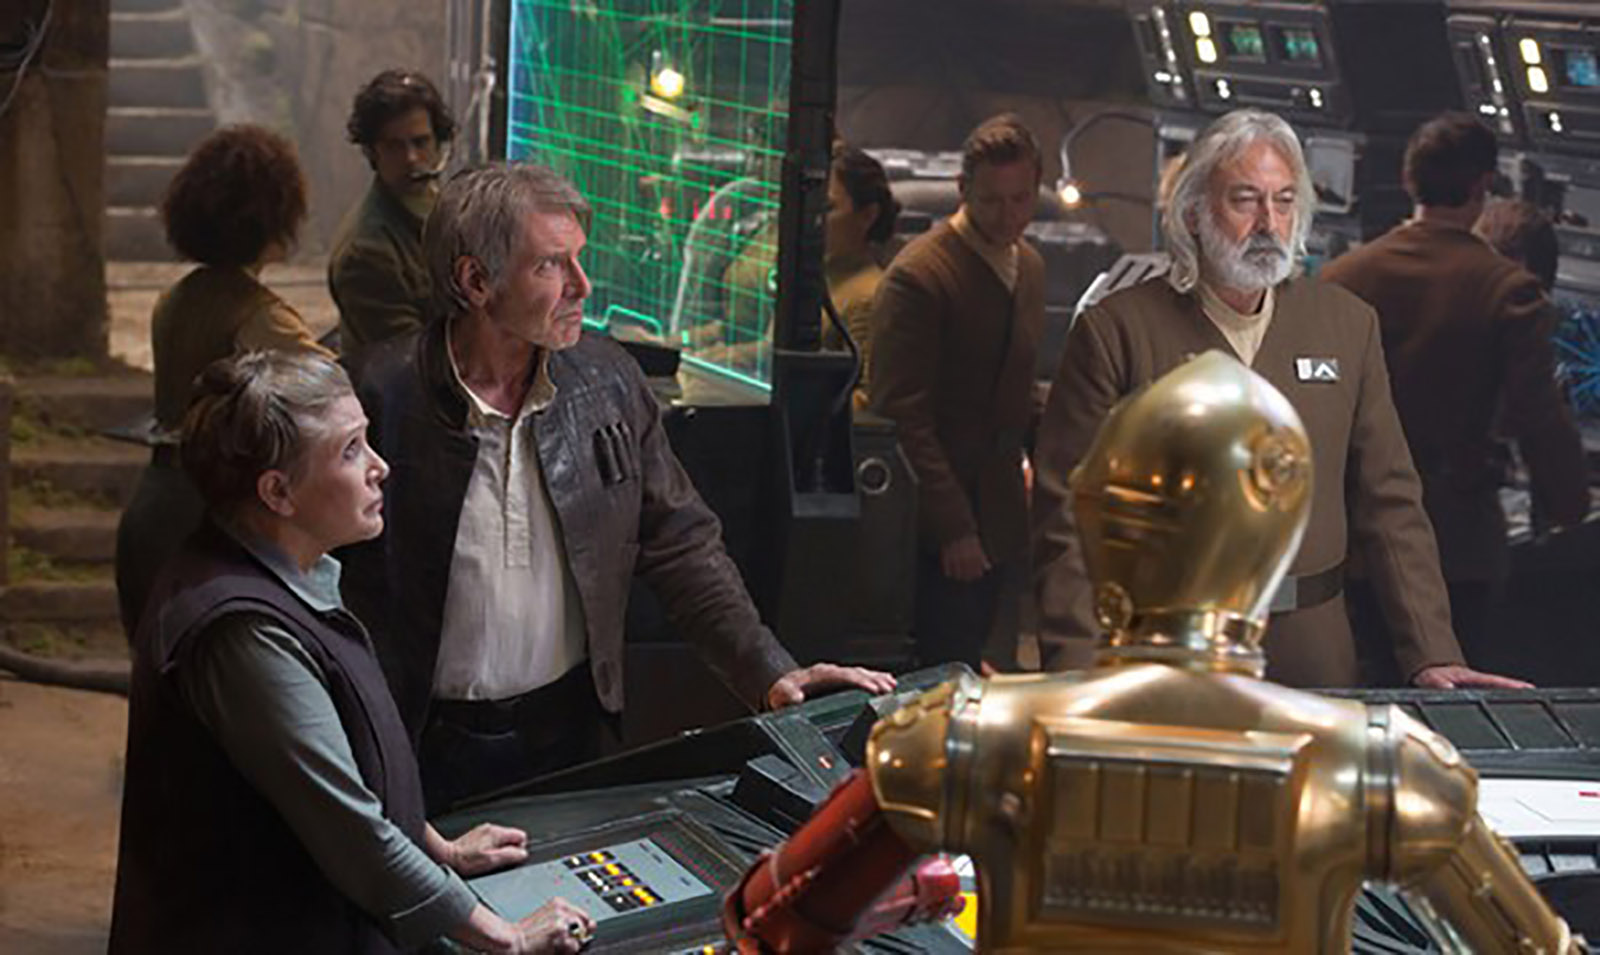 """Andrew Jack, right, appeared in """"Star Wars: Episode VII - The Force Awakens,"""" alongside Carrie Fisher and Harrison Ford."""